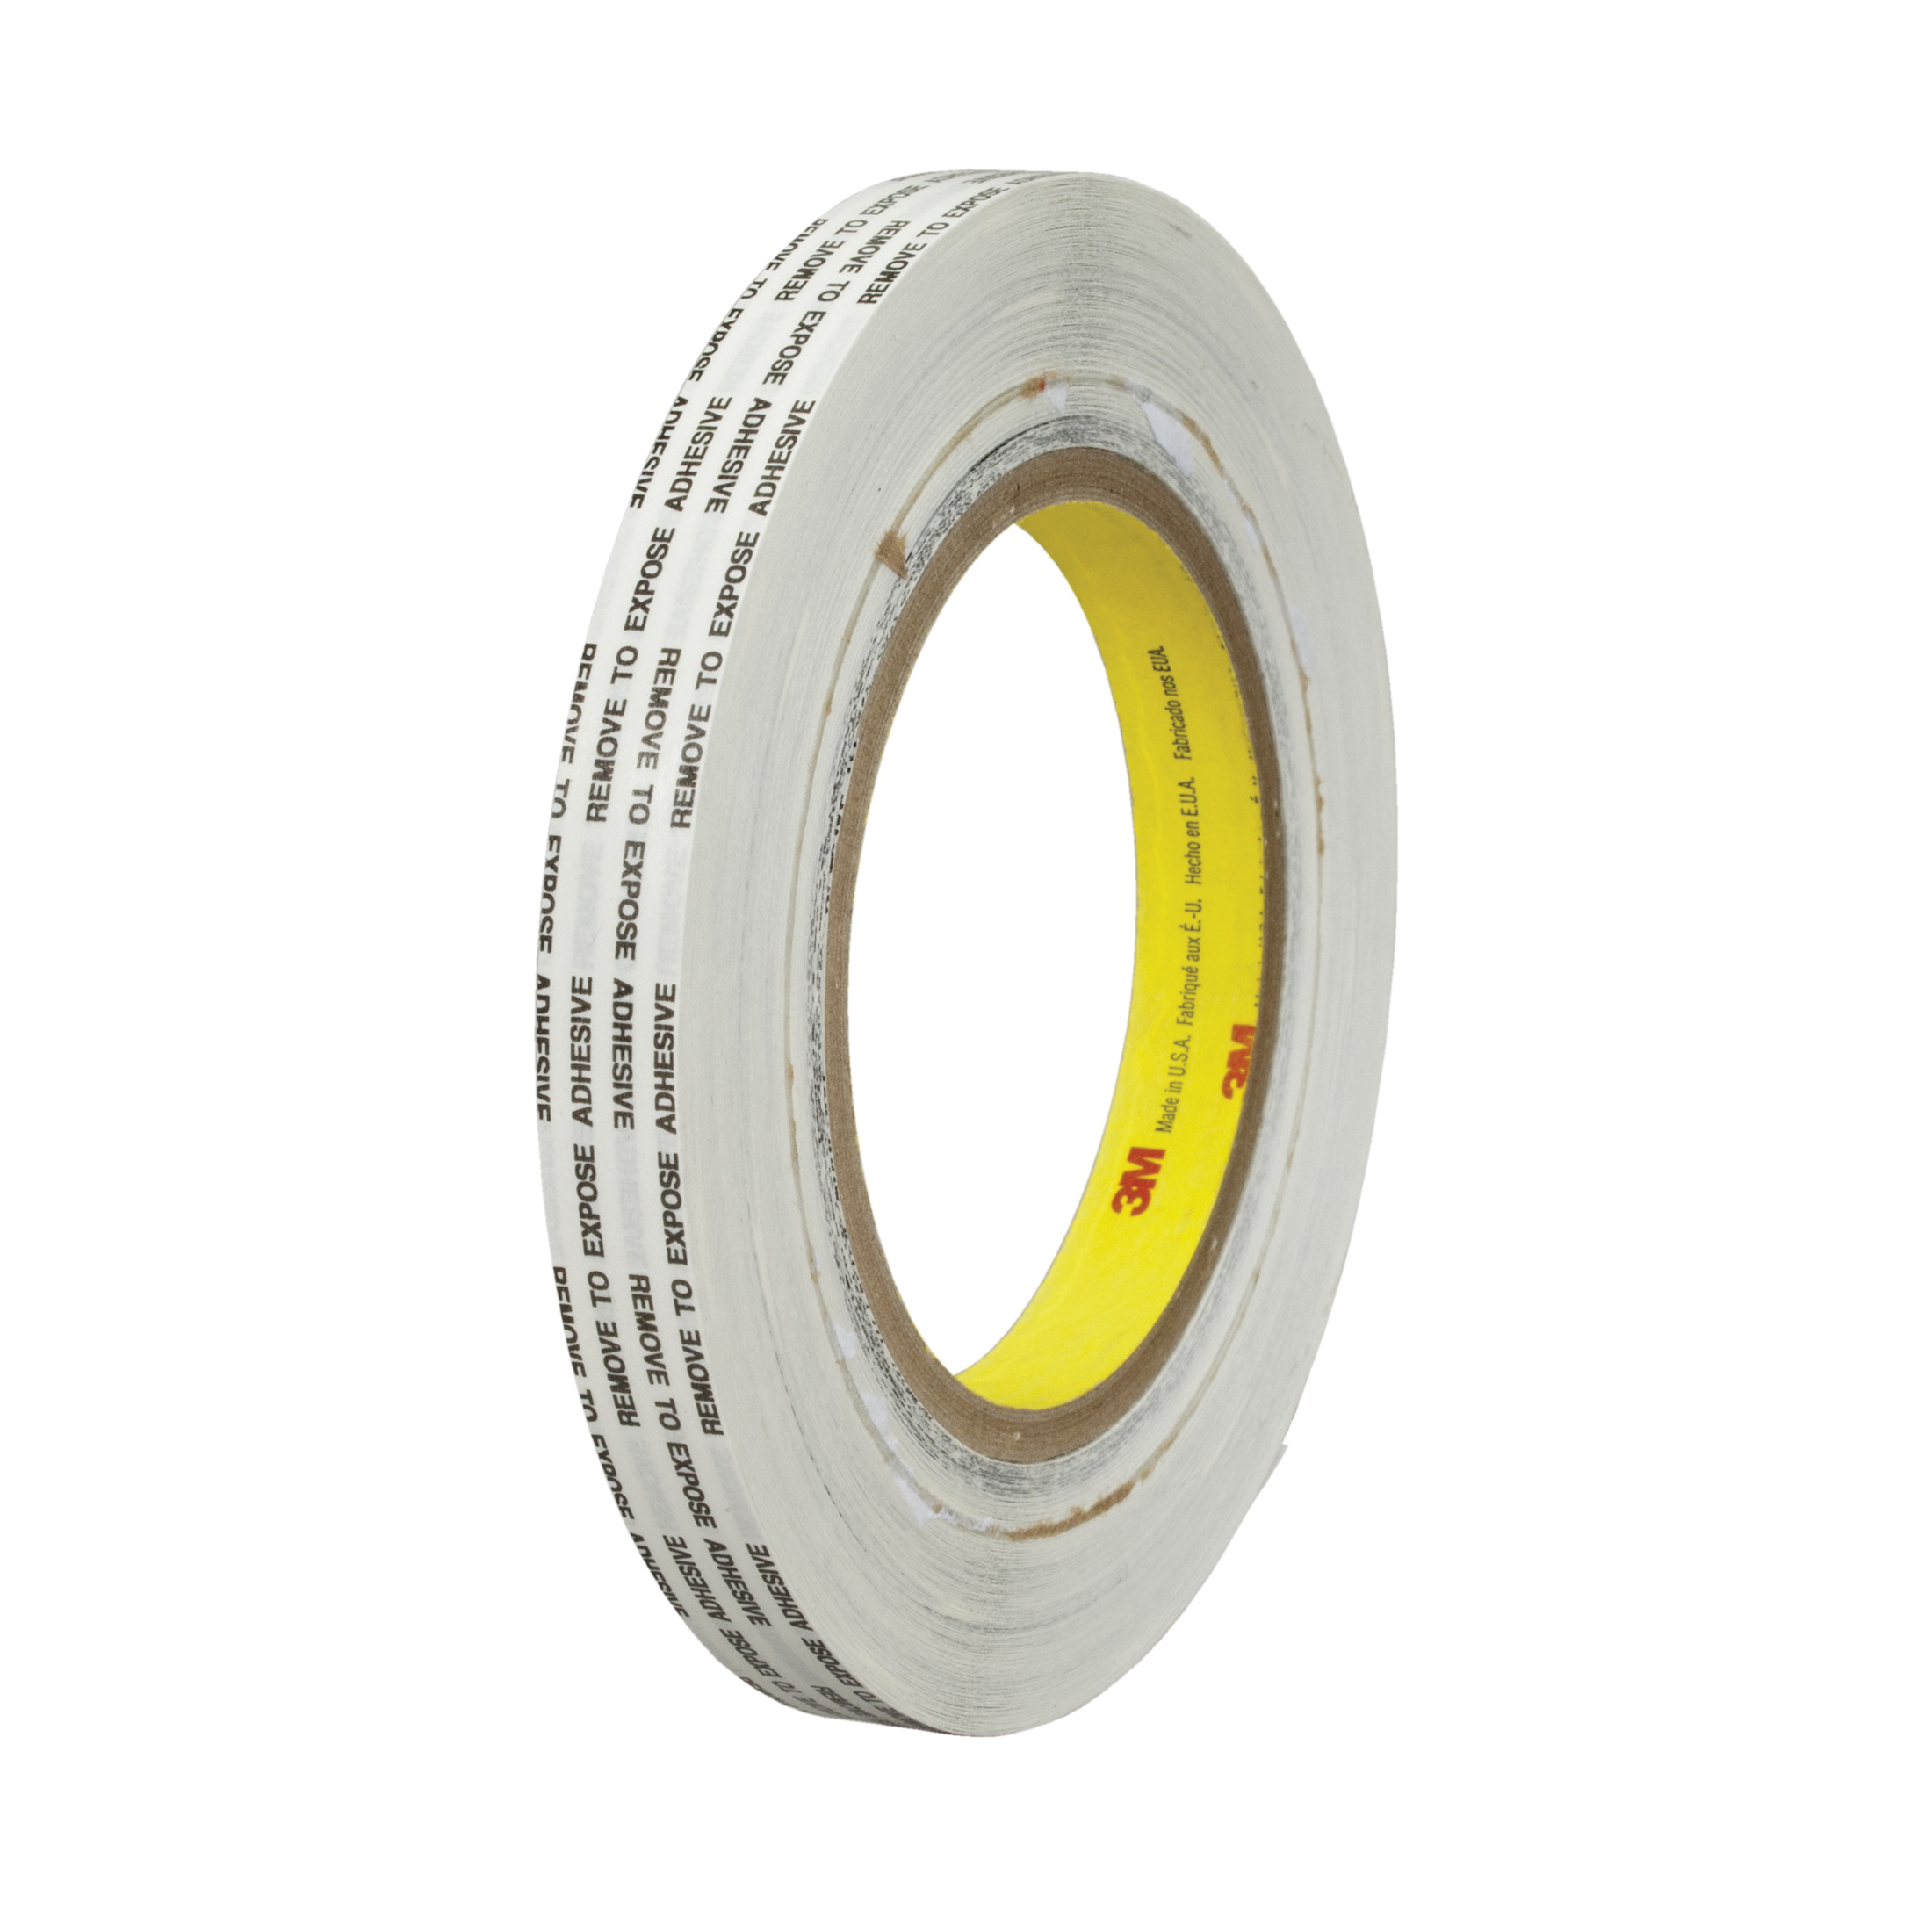 3M™ 021200-43223 Extended Liner Adhesive Transfer Tape, 1000 yd L x 1 in W, 2 mil THK, 2 mil 340 Acrylic Adhesive, Translucent